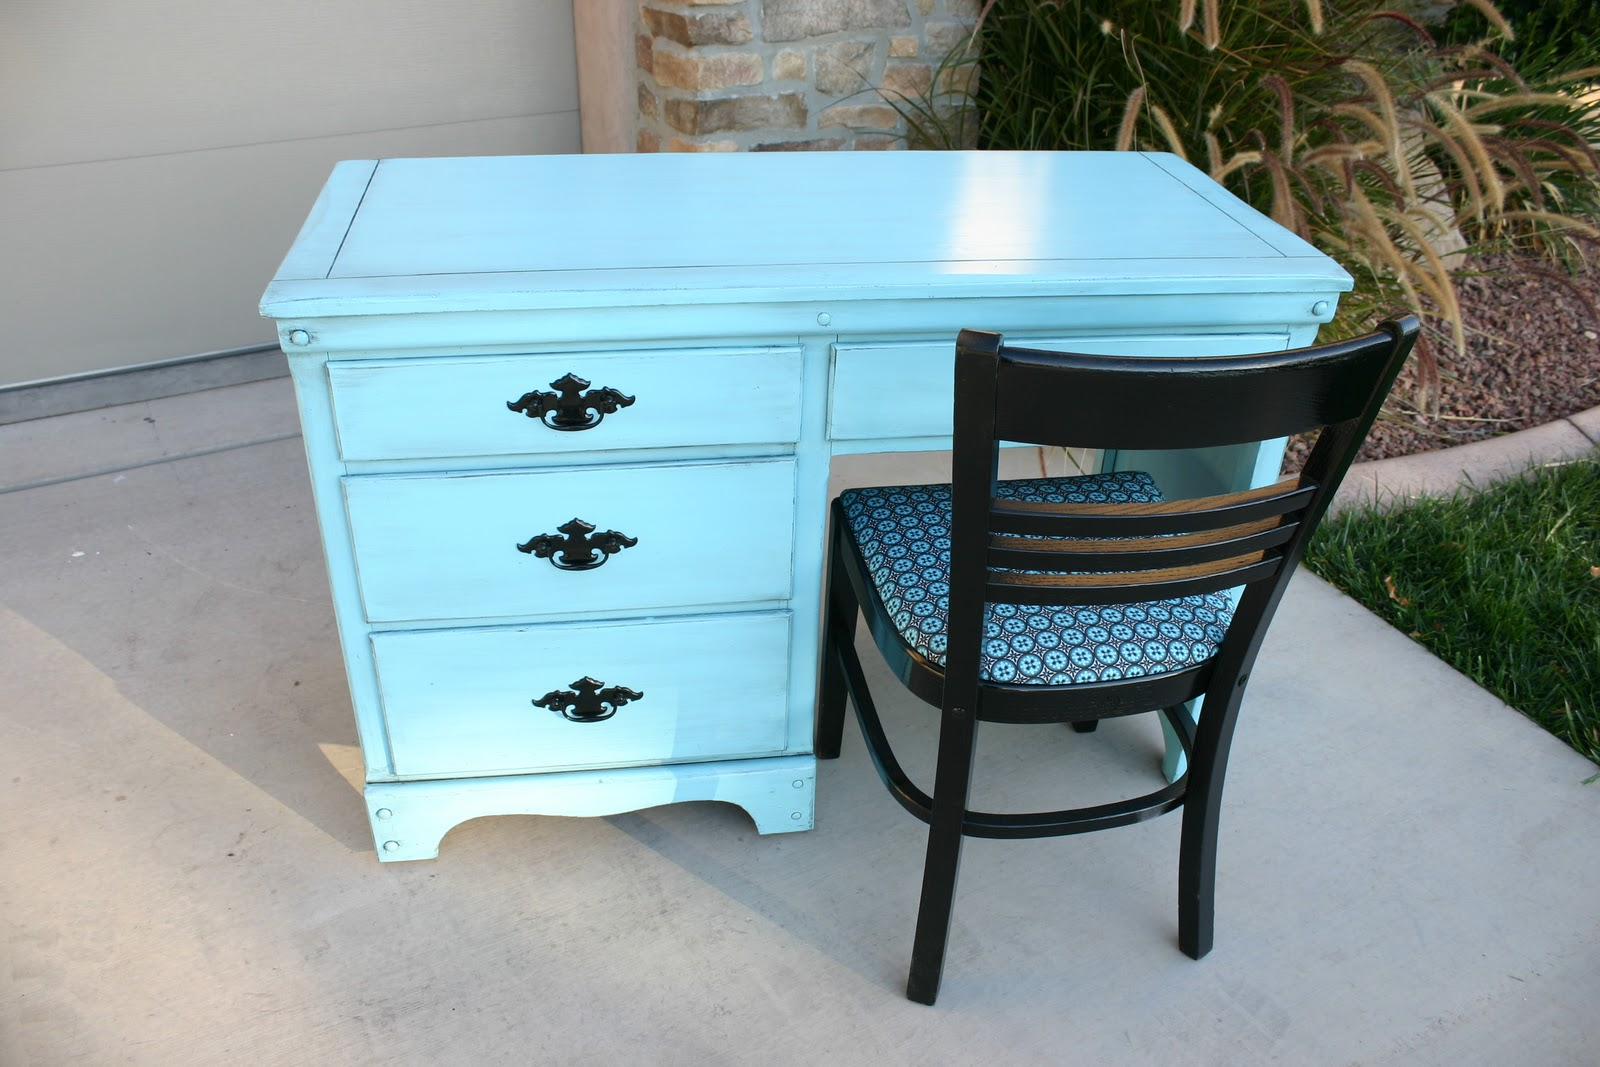 teal computer chair amazing pocket doubletake decor bright desk and